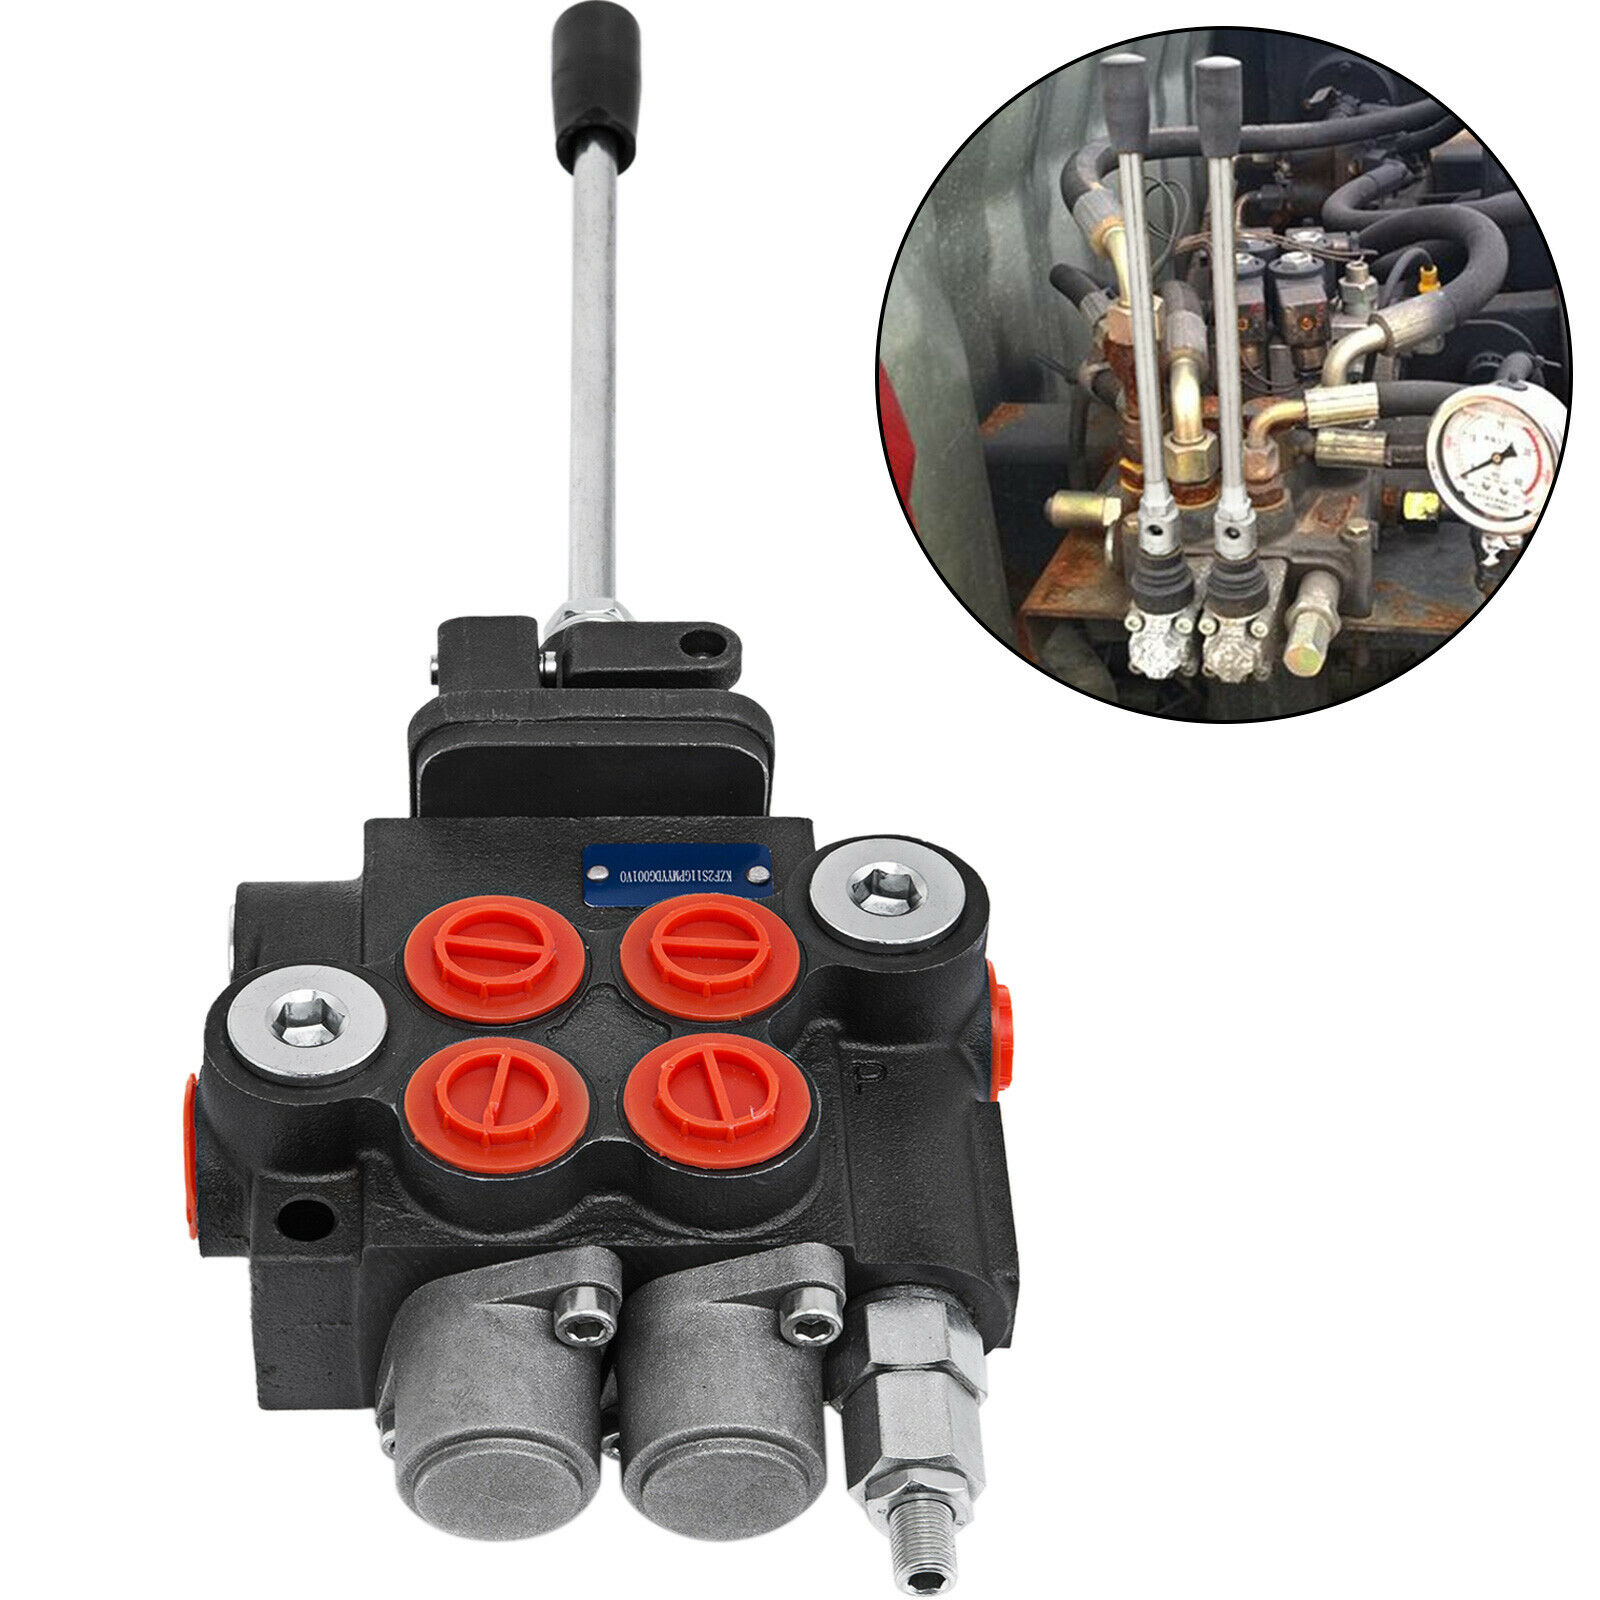 Hydraulic Directional Control Valve Tractor Loader w// Joystick 11 GPM 2 Spool